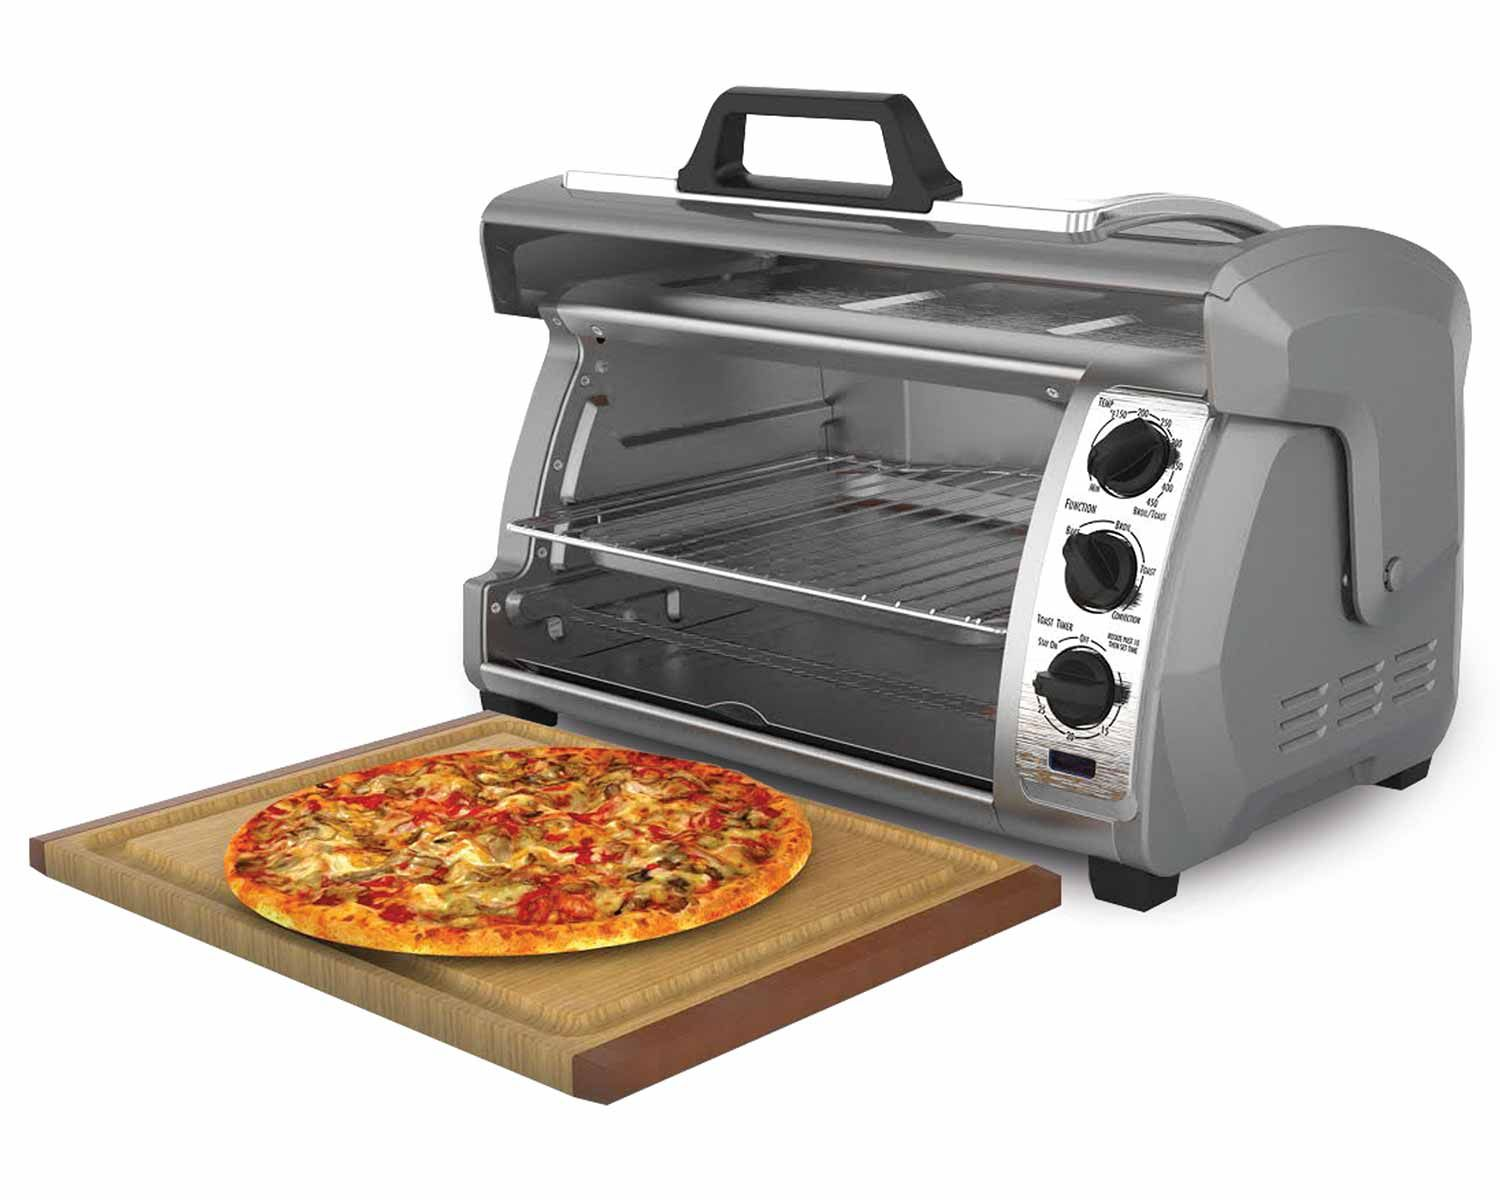 bbq inch bull ovens outdoor fired oven countertops pizza countertop extra coutnertop wood model large